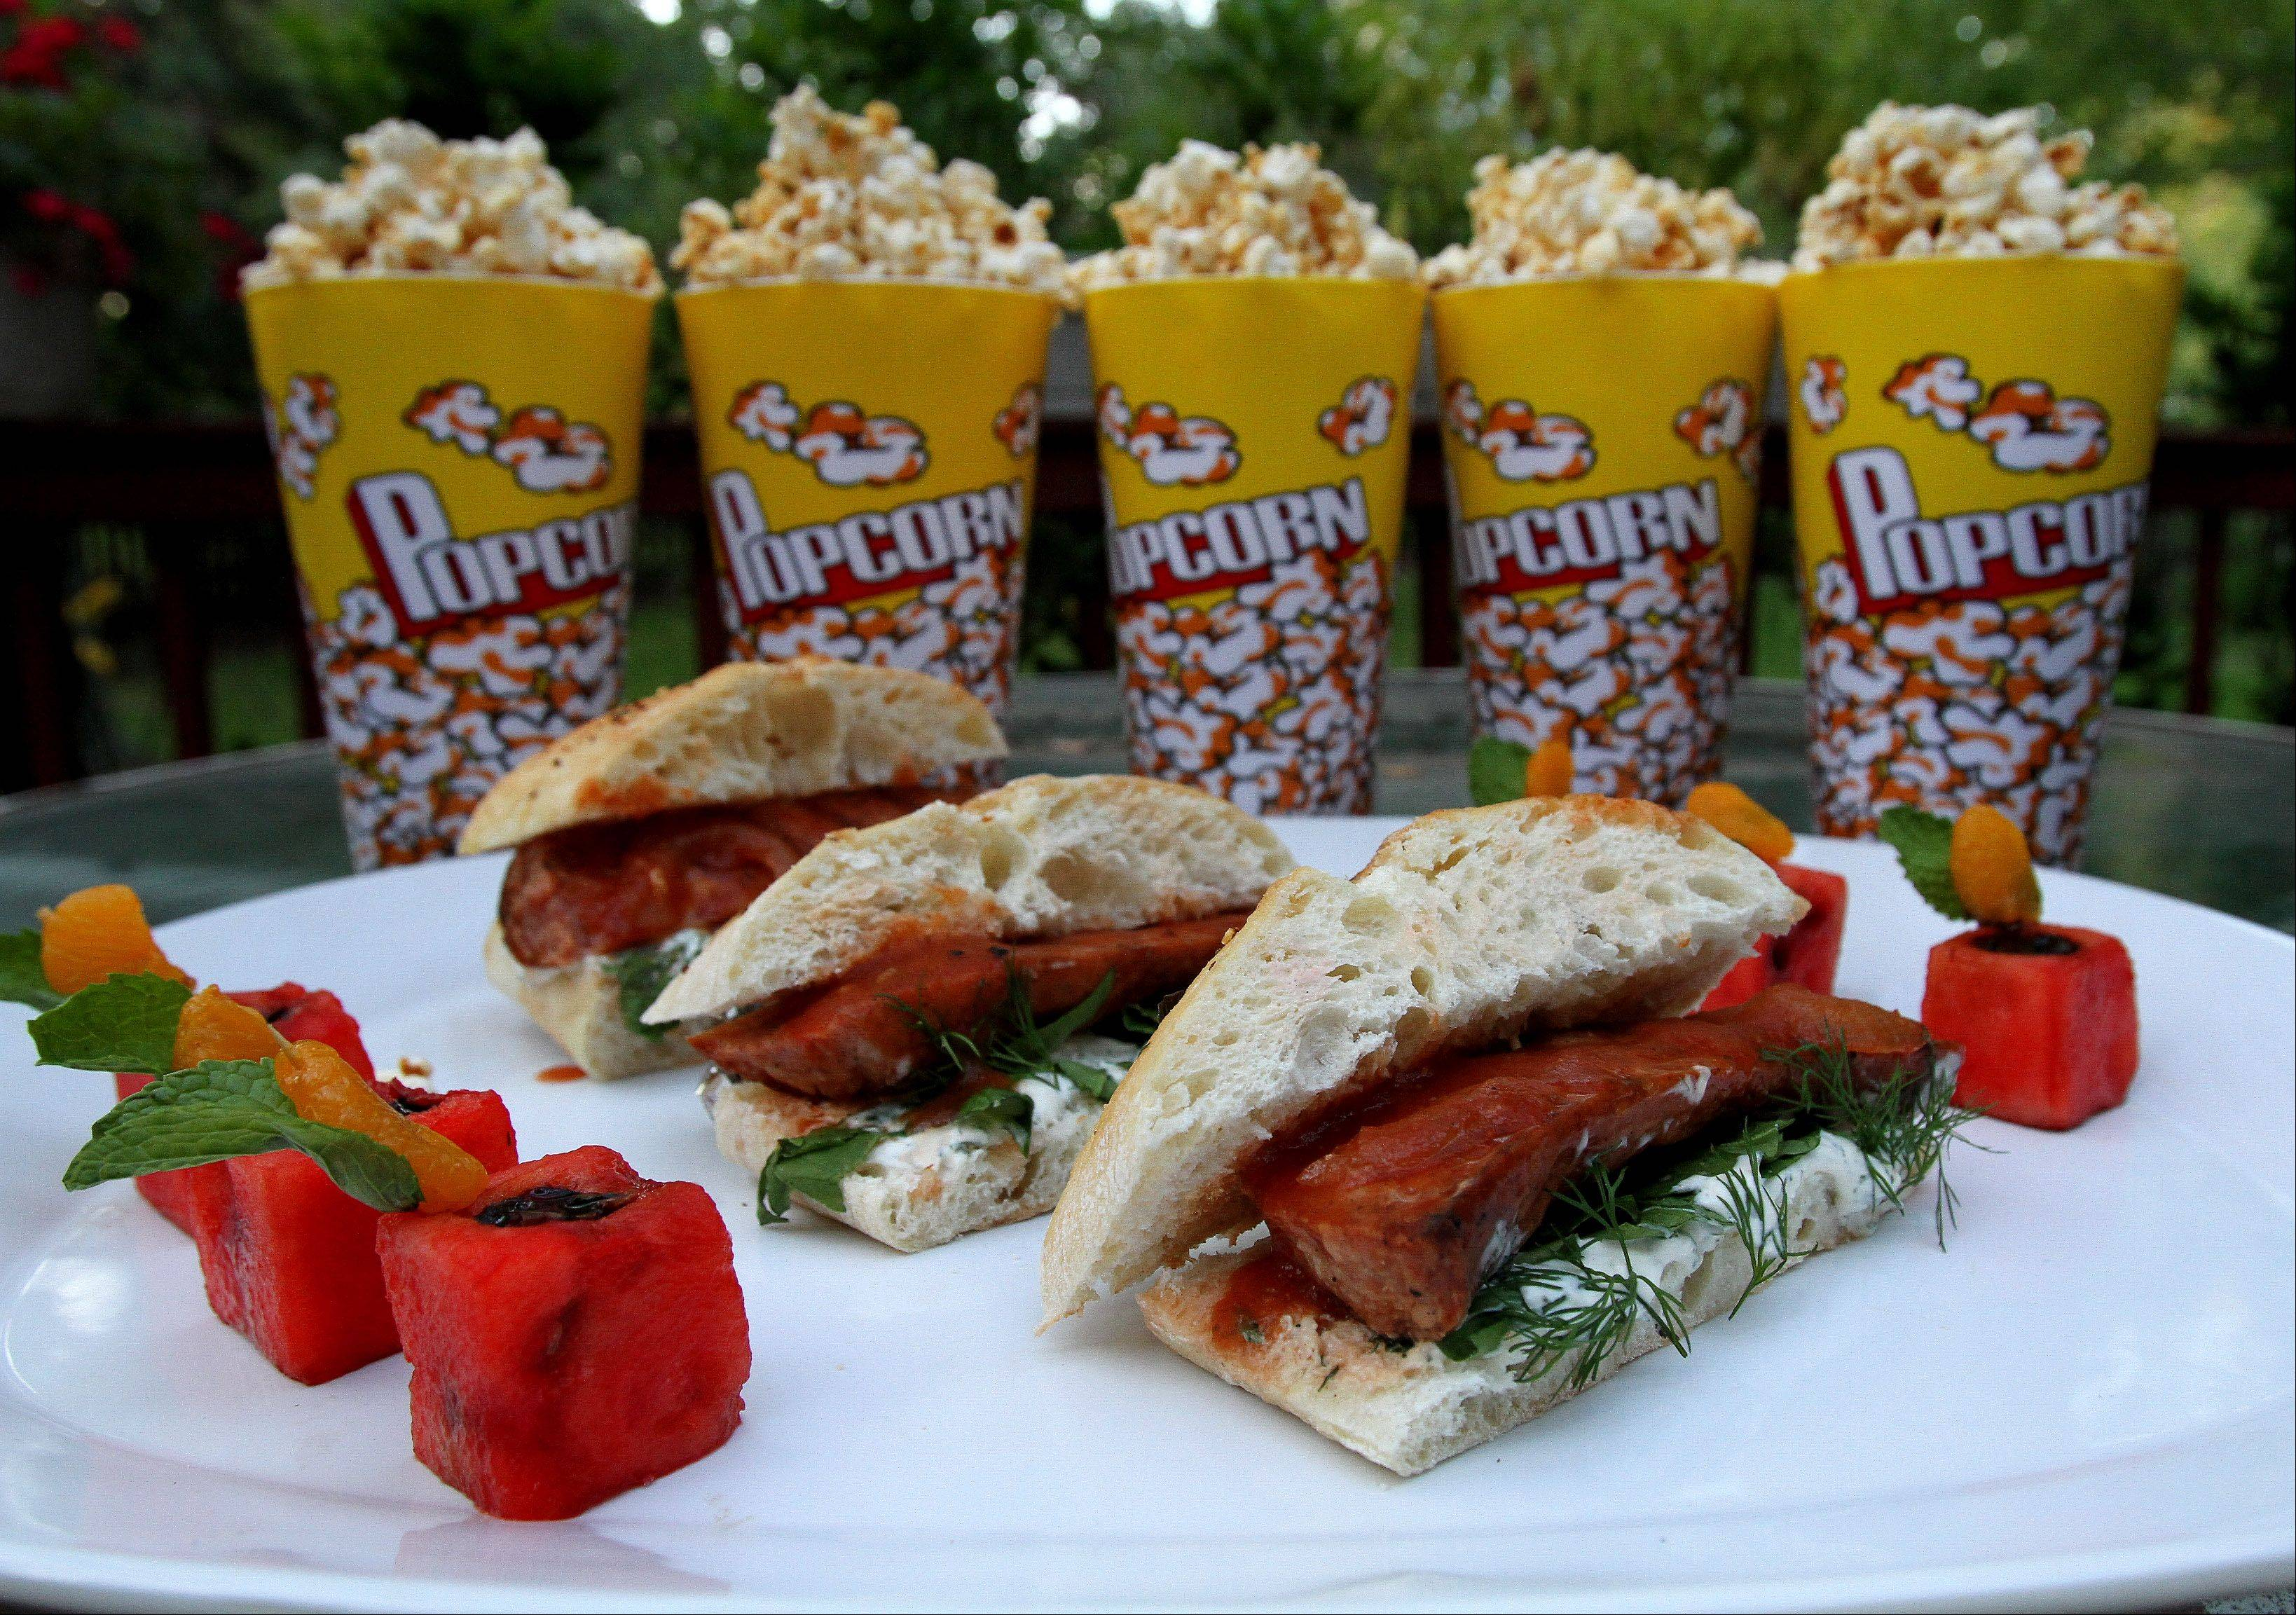 Terri Edmunds of Naperville impressed the judges with her Kielbassa Blitz Sandwiches, Sweet & Fiery Touchdown Popcorn and Watermelon Field Goal Bites during the tailgate challenge.